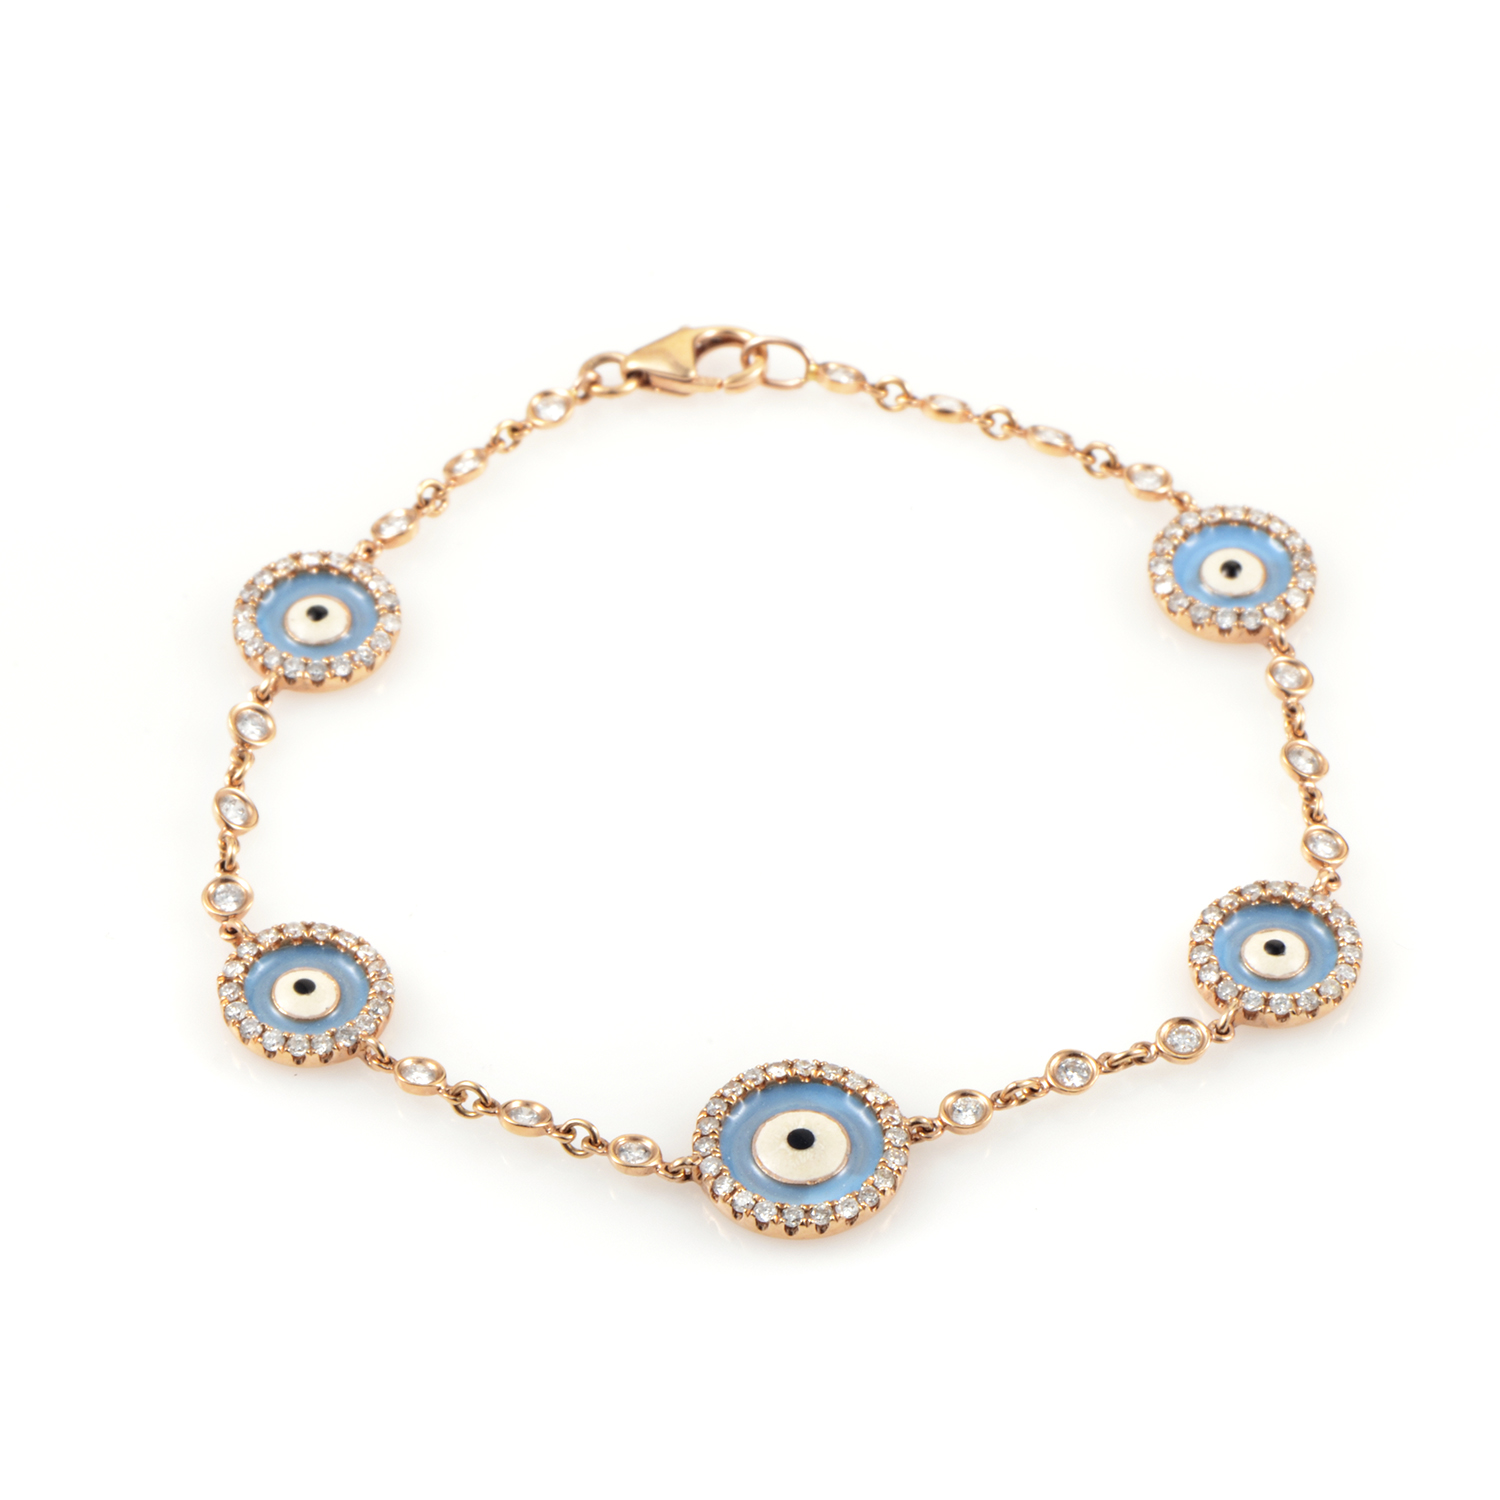 Women's 18K Rose Gold Diamond & Enamel Evil Eye Bracelet BT21941RRZ